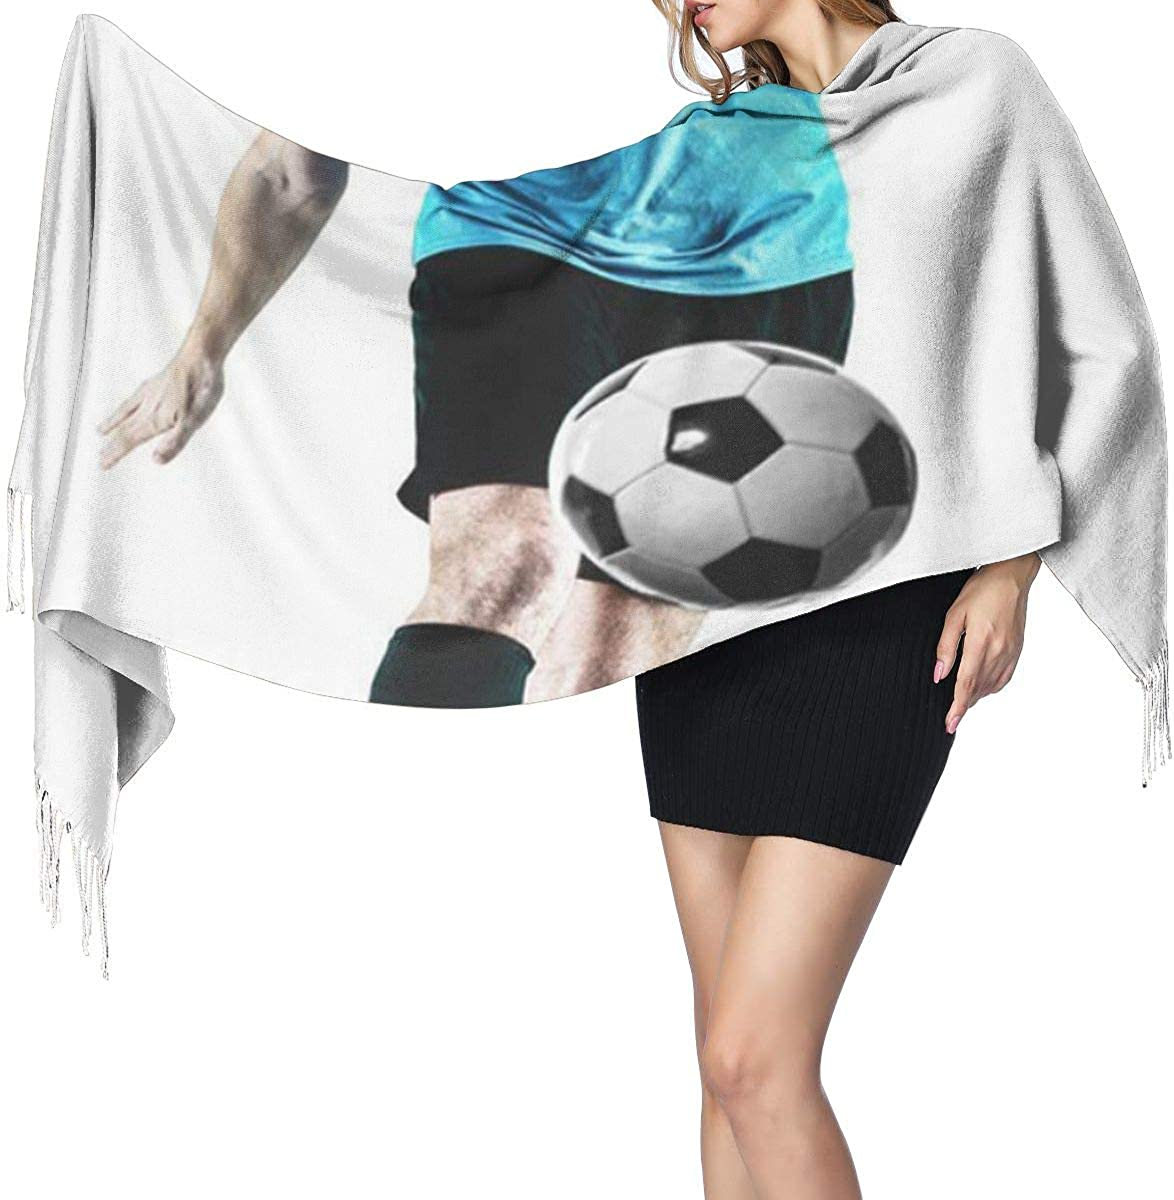 Fashion Lady Shawls,Comfortable Warm Winter Scarfs Full White Football Soccer Player Man Action Kicking Soft Cashmere Scarf For Women